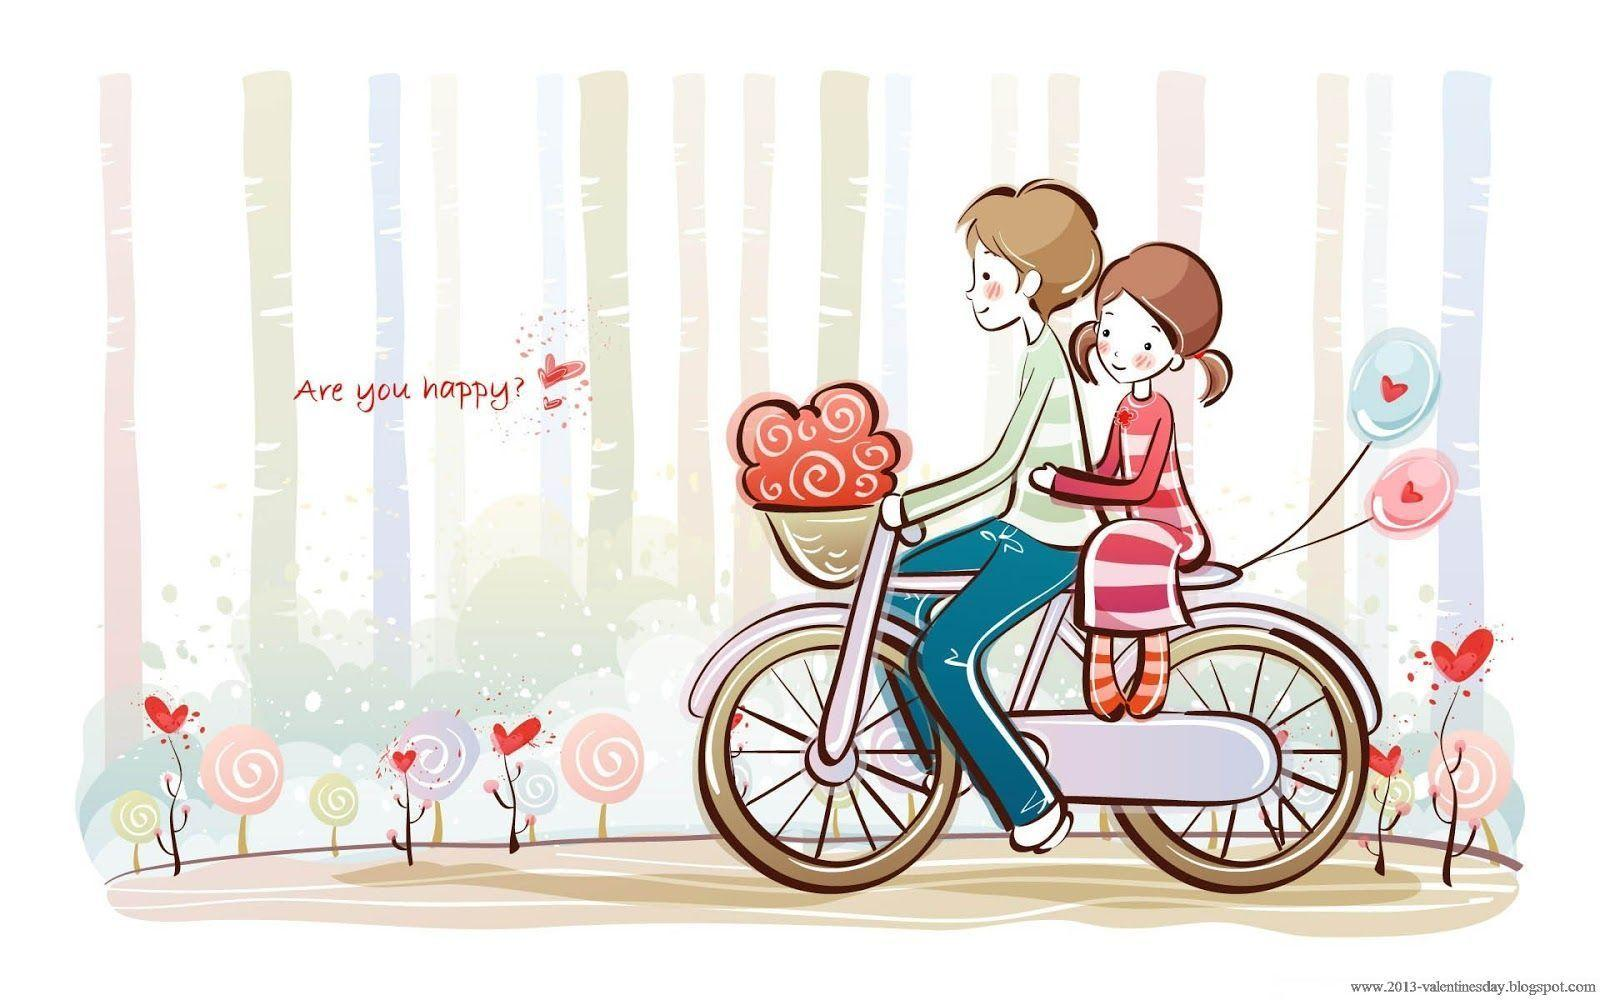 Image For > Cute Couple Love Cartoon Wallpapers